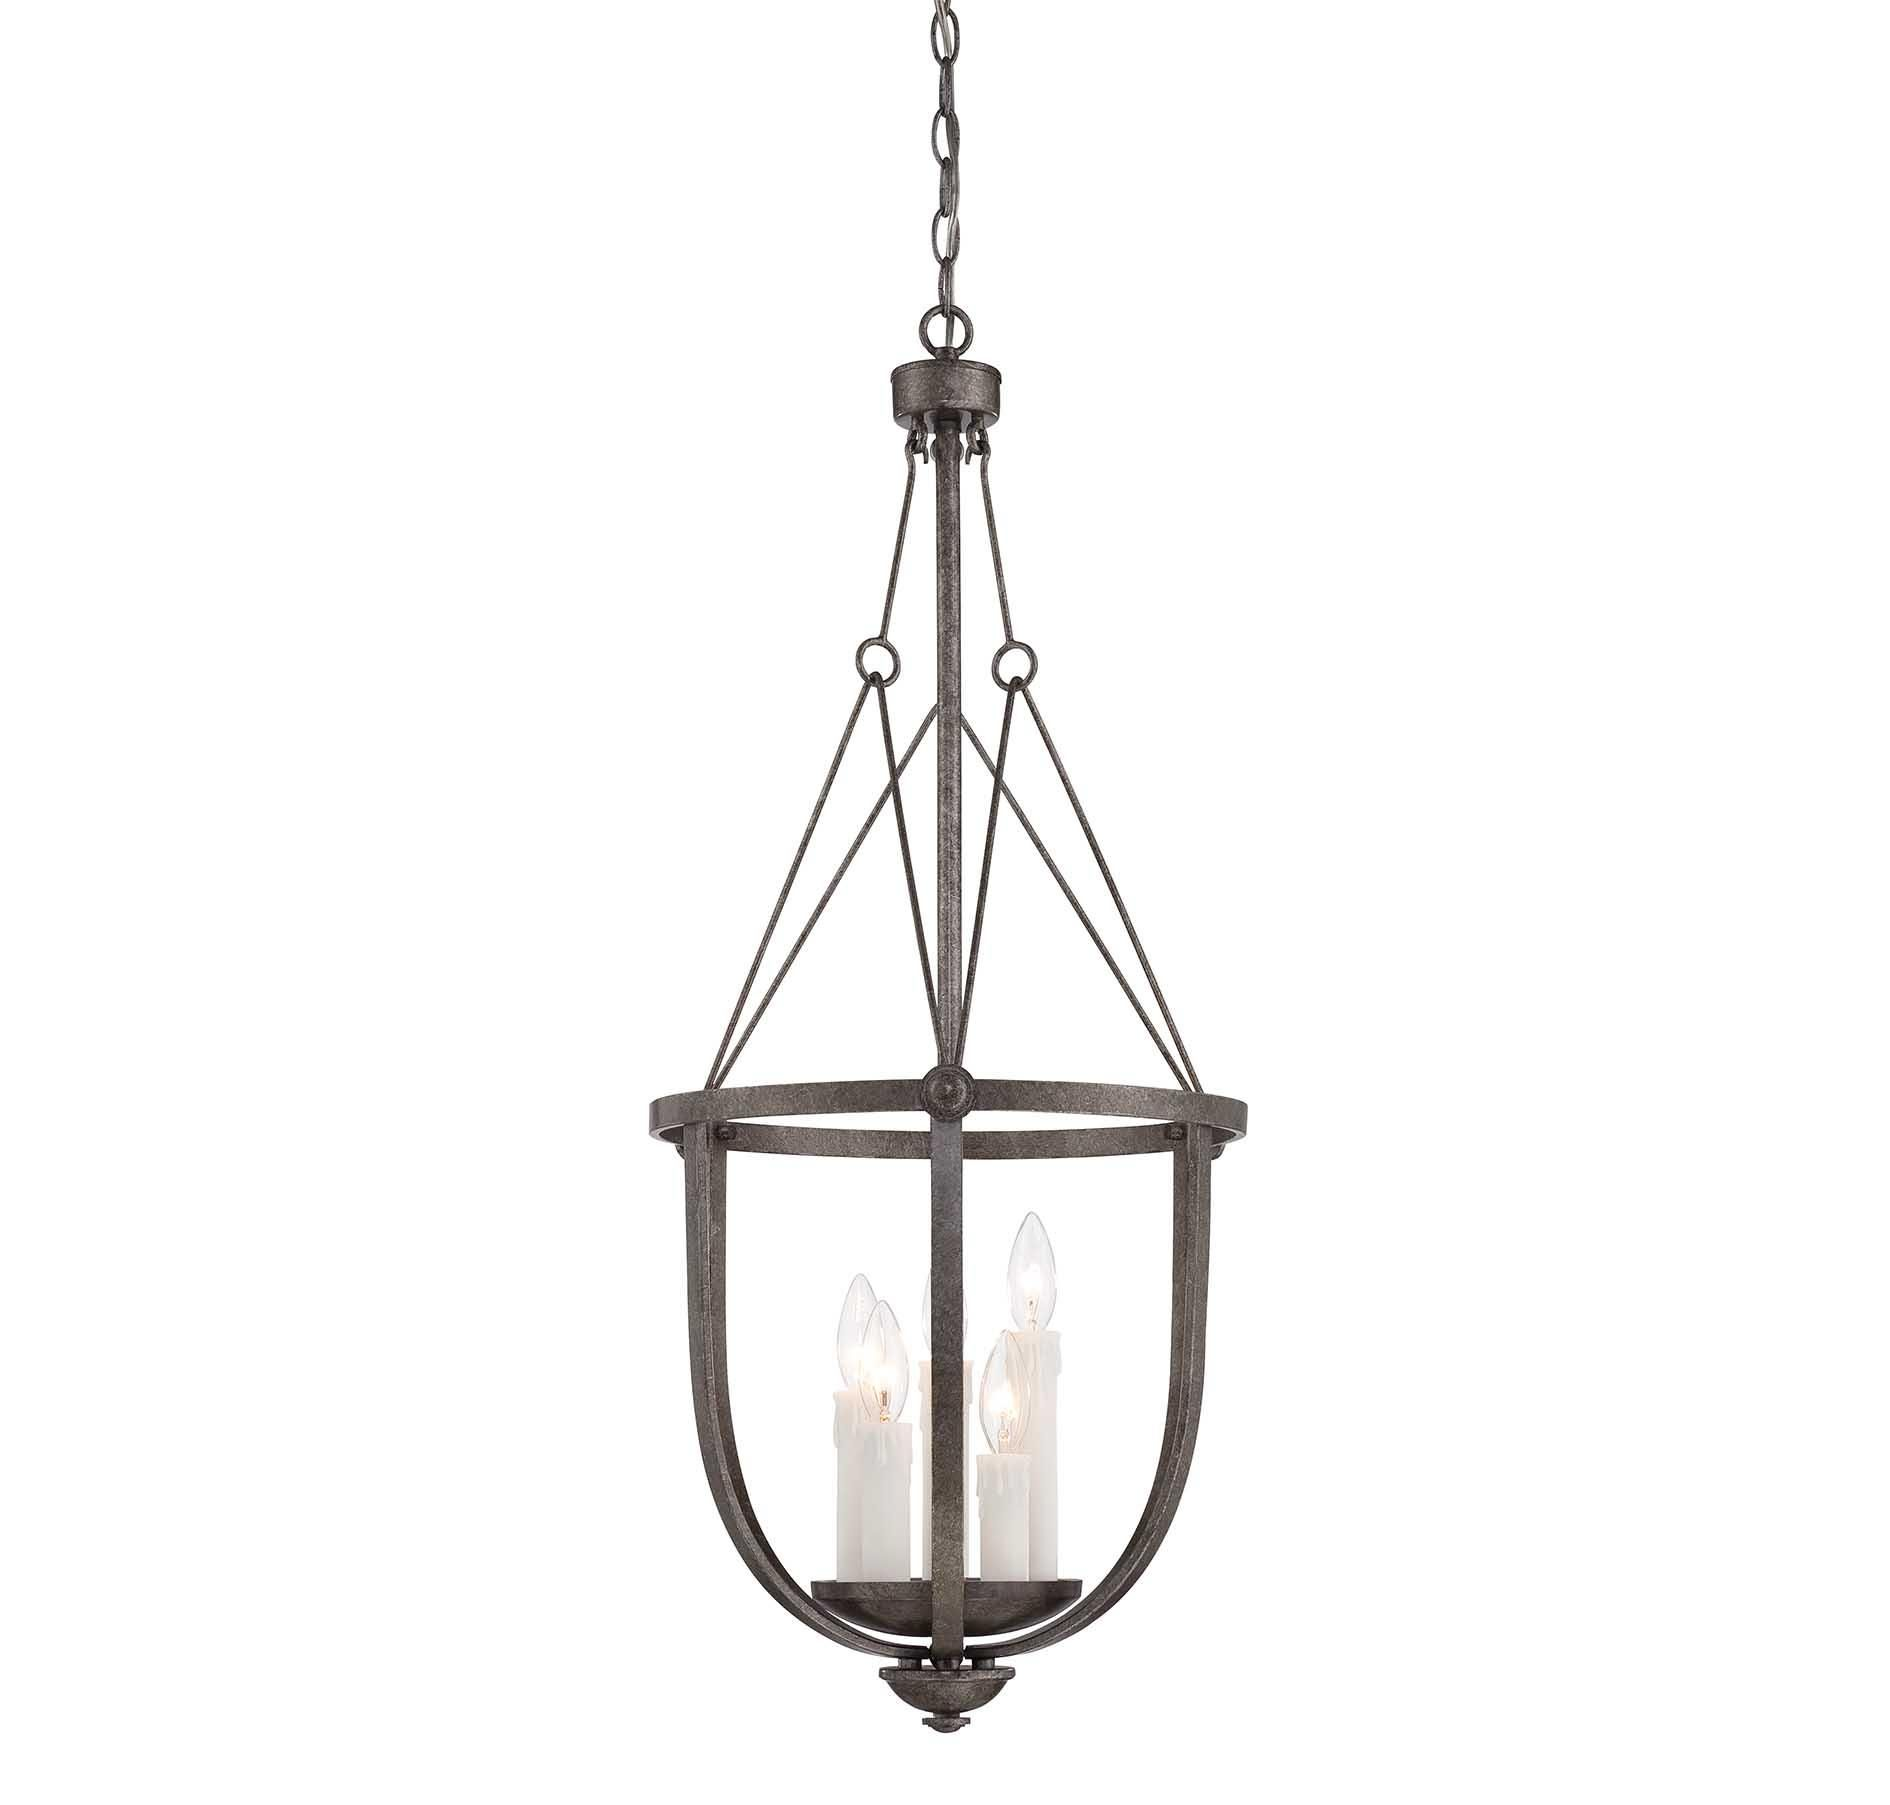 35 Inch Iron and Wood Farmhouse Chandelier Lighting